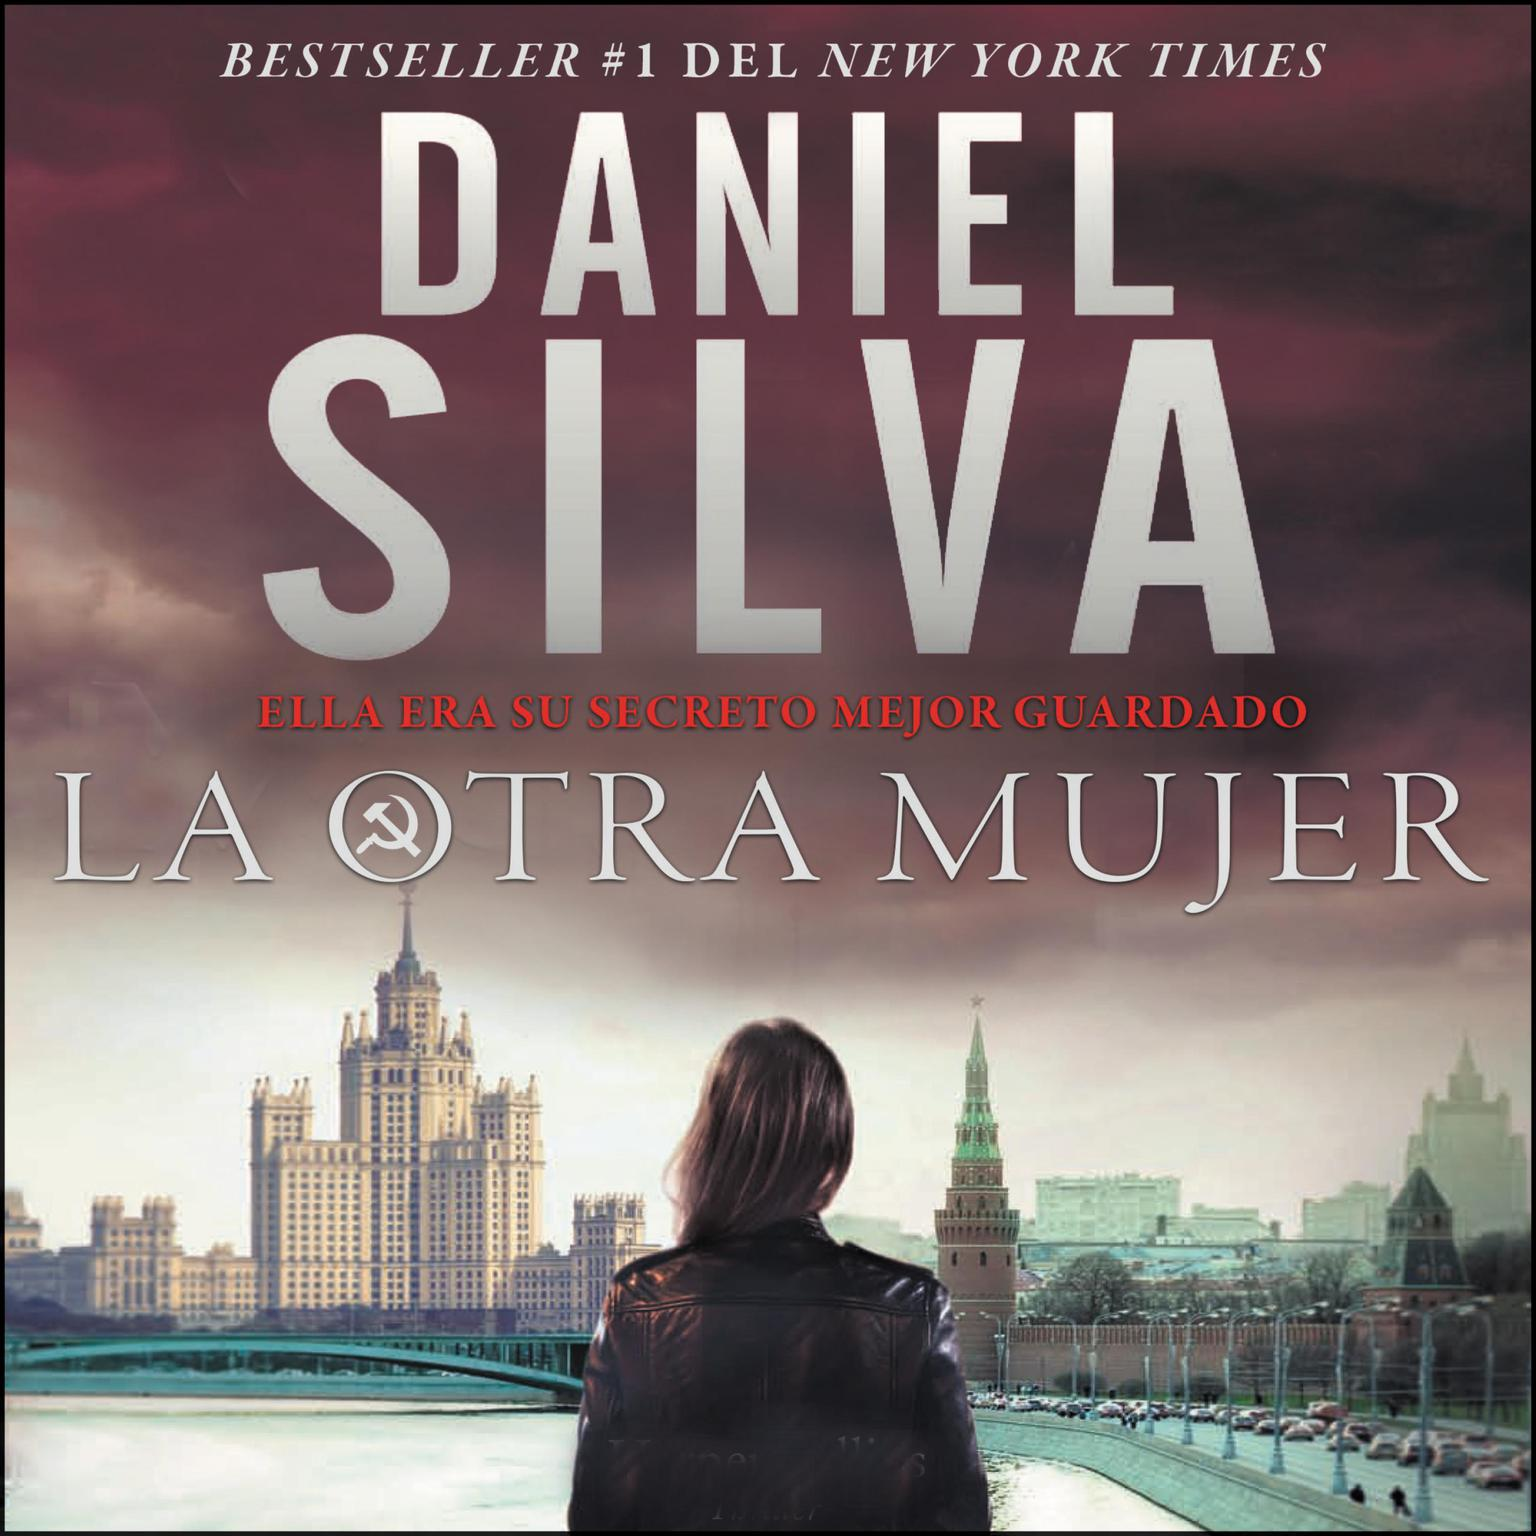 Printable Other Woman, The  otra mujer, La (Spanish edition): Una novella Audiobook Cover Art